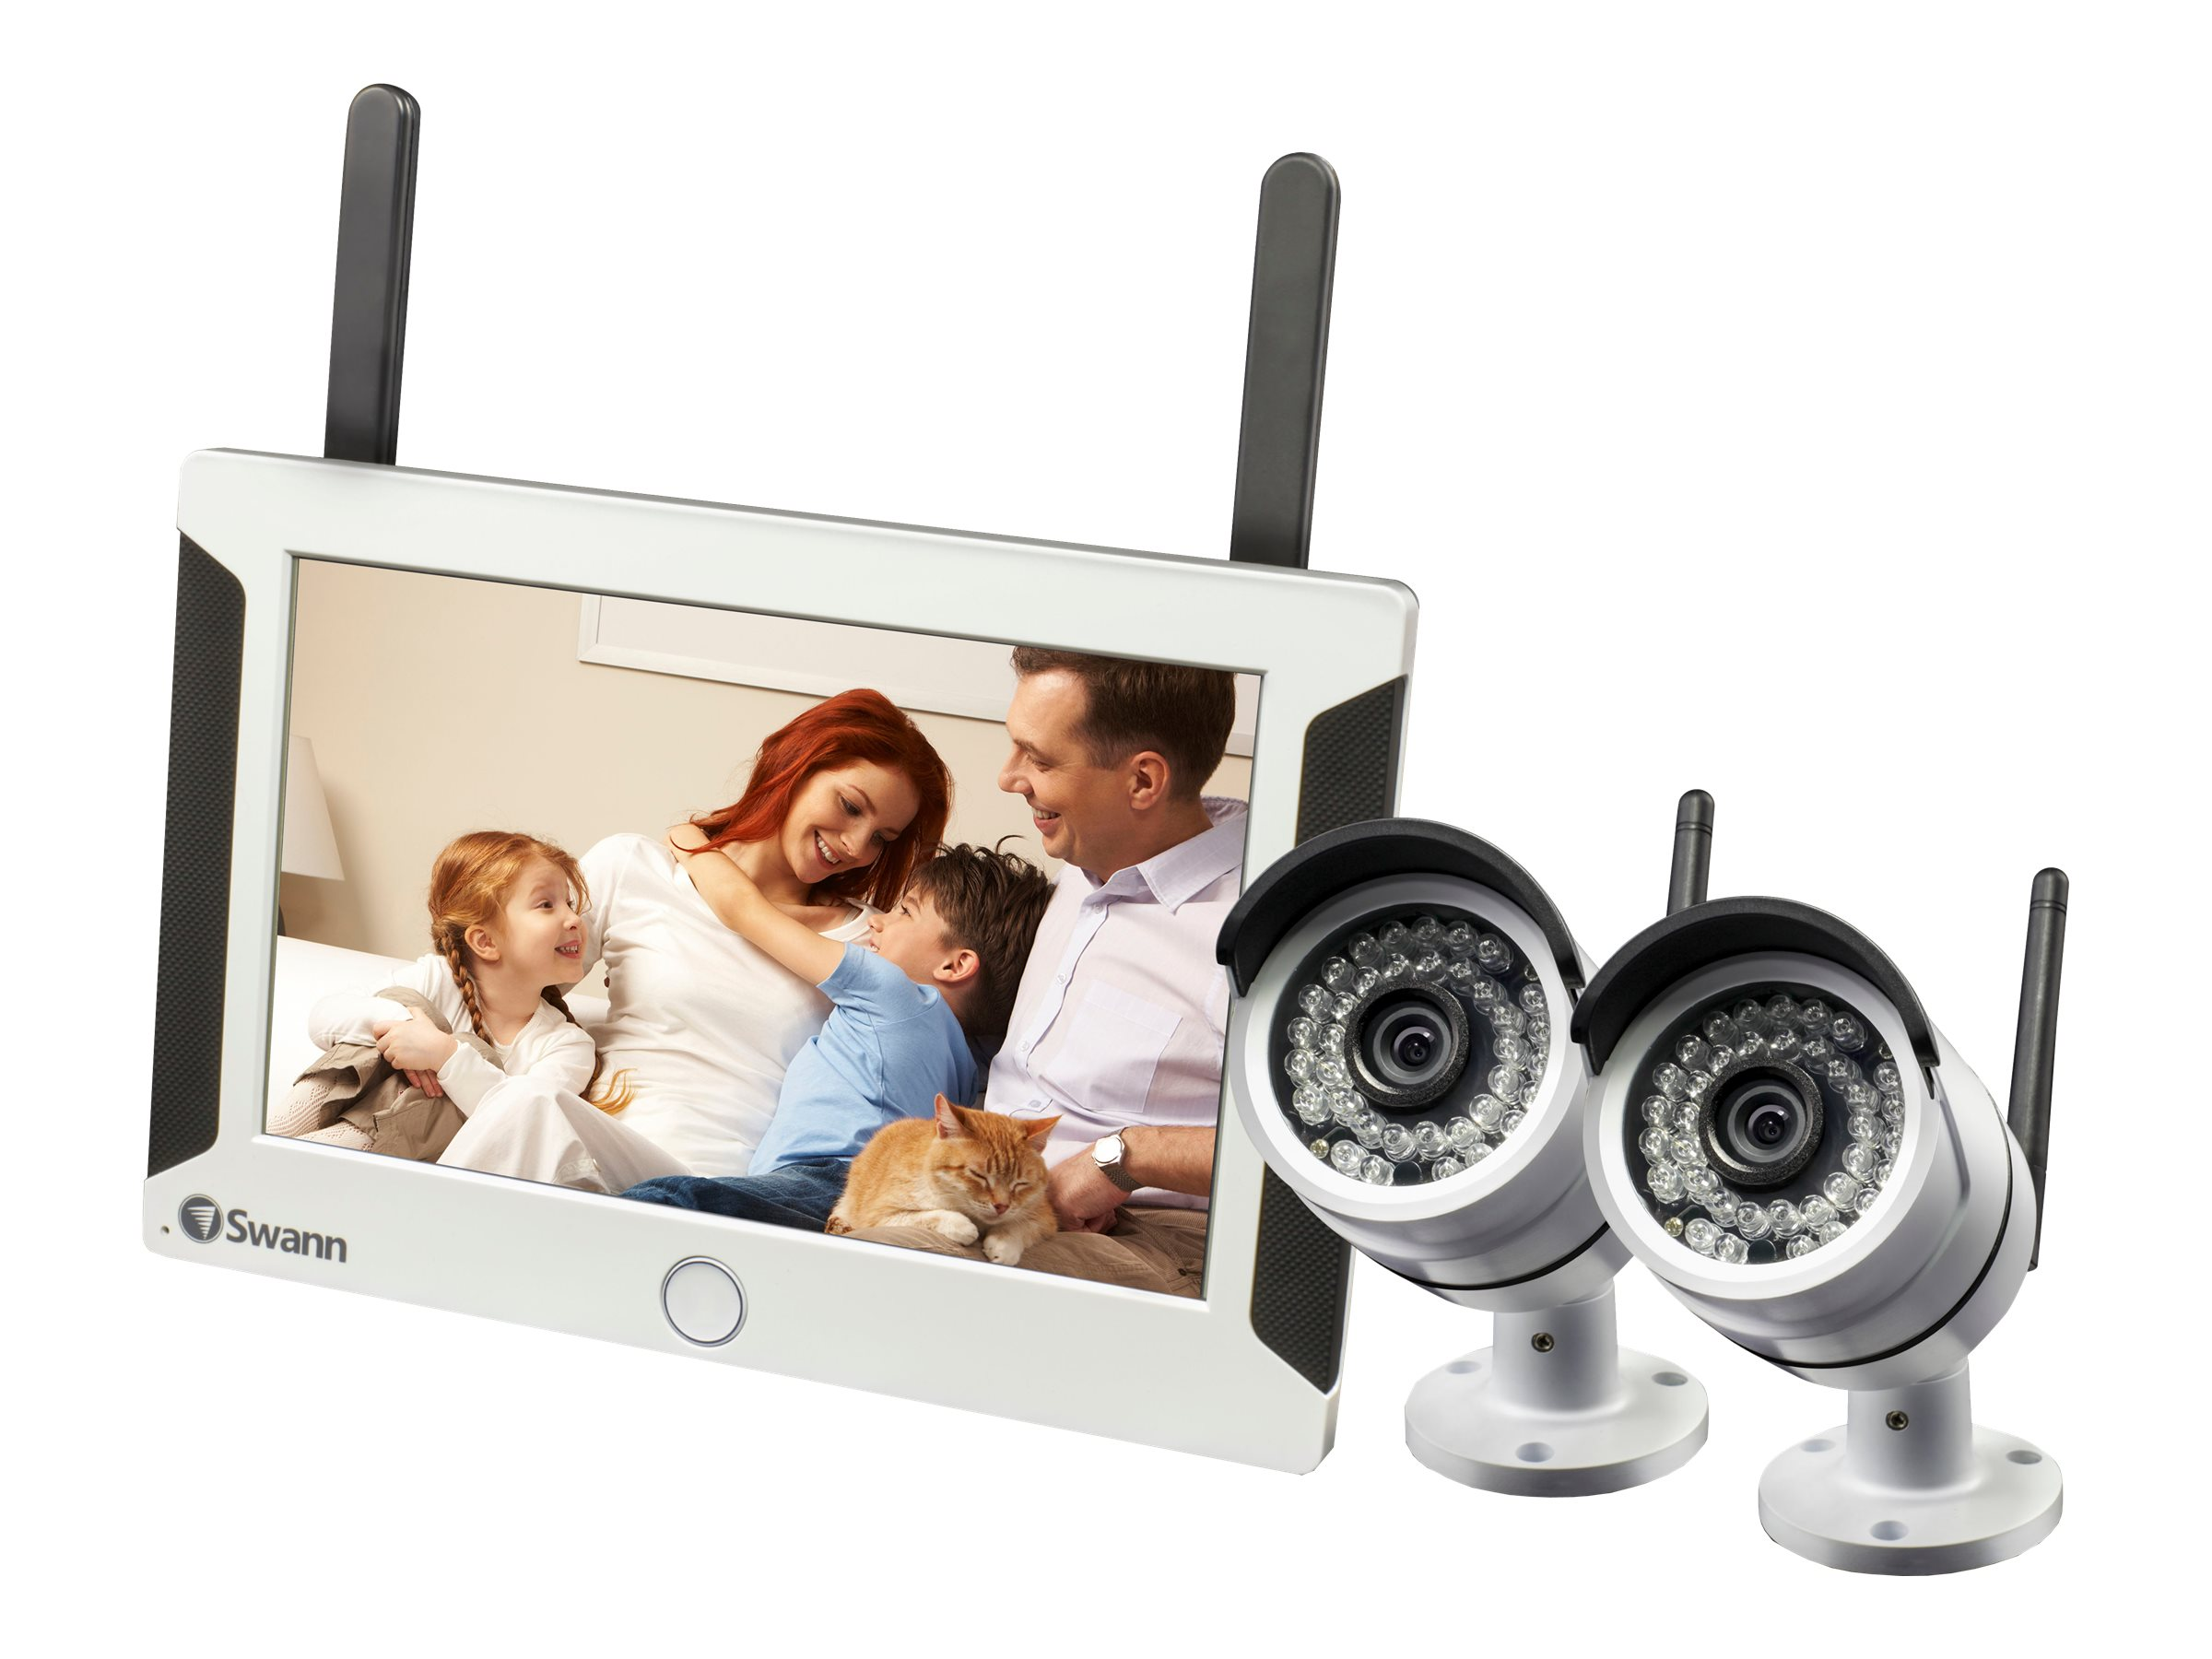 Swann All-in-One SwannSecure Wi-Fi HD Monitoring System with Monitor, 2x Cameras, SWNVW-470PK2-US, 30949006, Video Capture Hardware